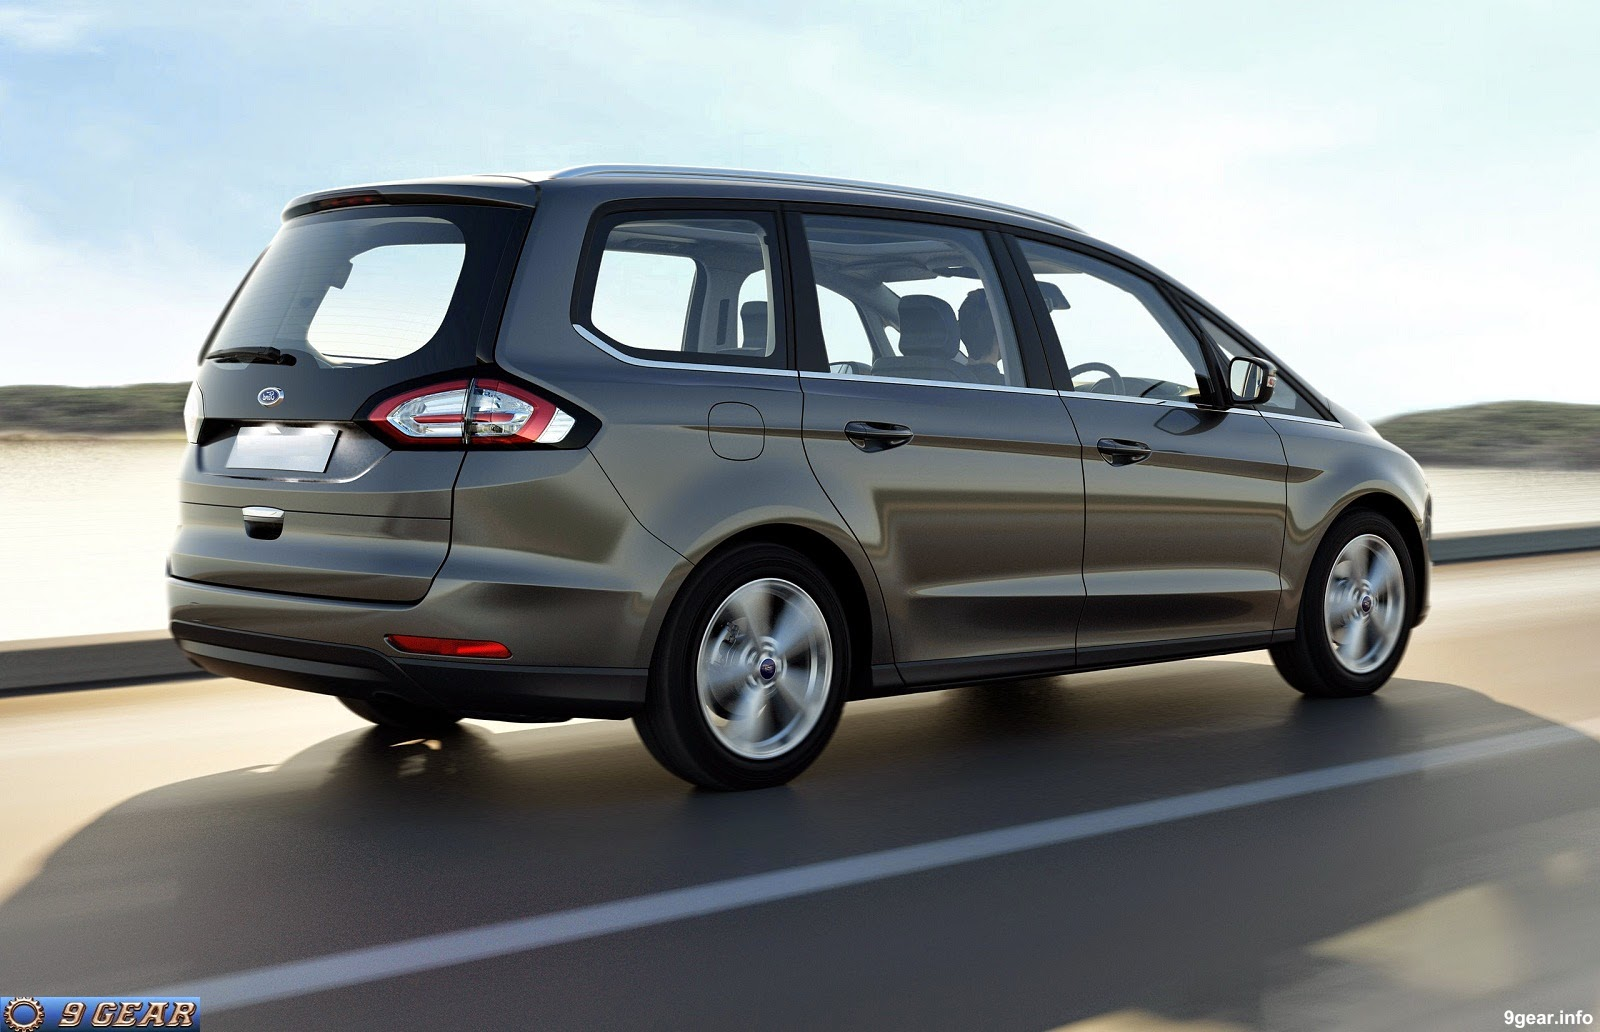 2016 ford galaxy 2 0 tdci bi turbo diesel 210 ps car reviews new car pictures for 2018 2019. Black Bedroom Furniture Sets. Home Design Ideas